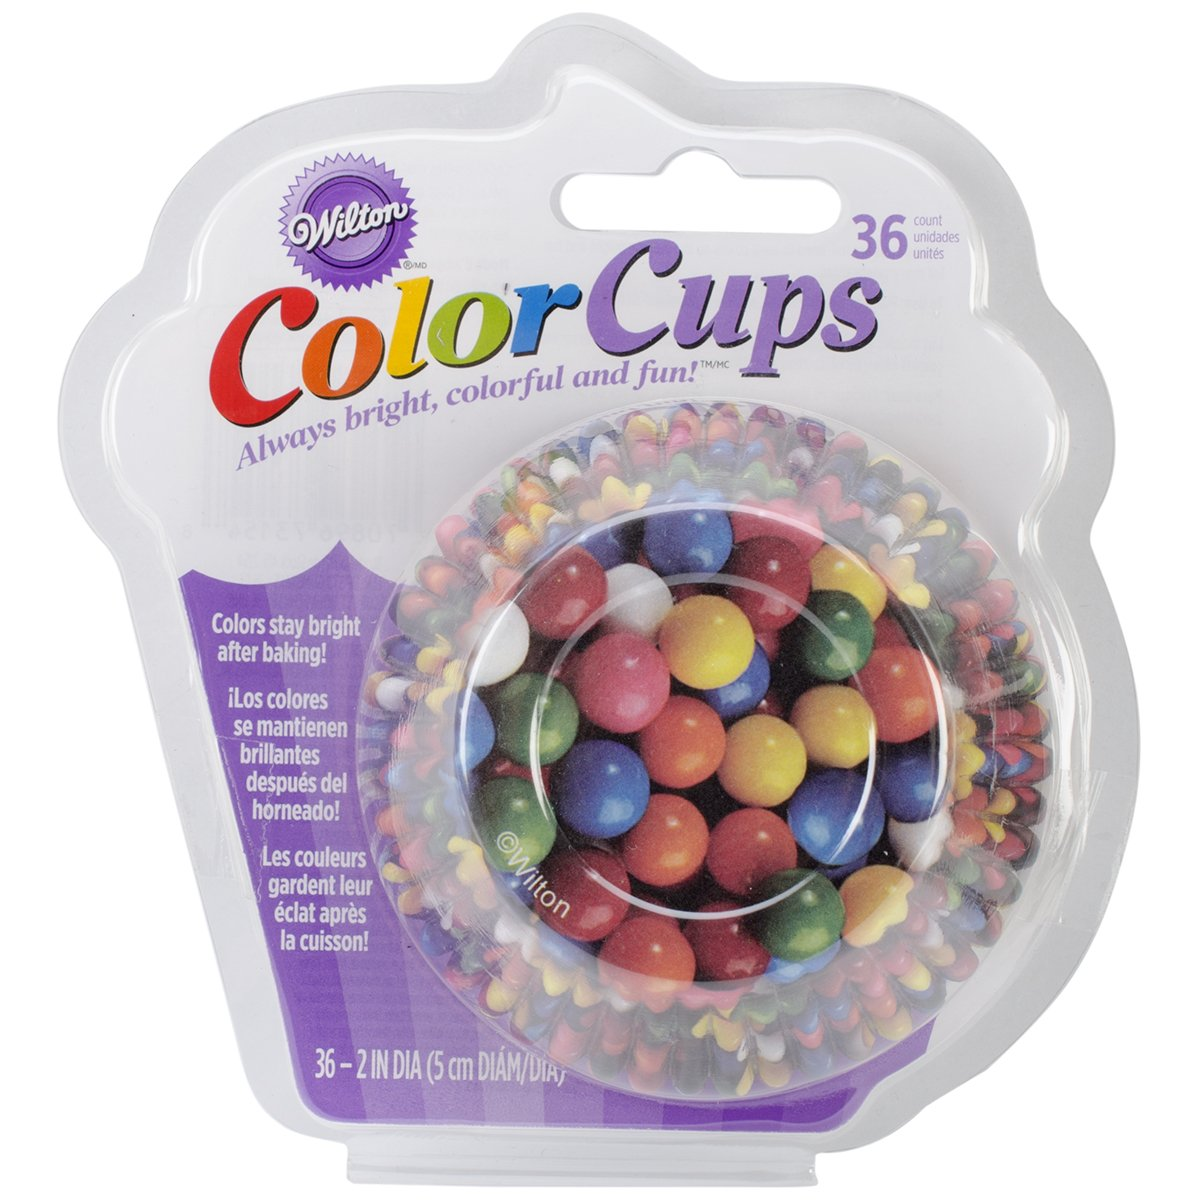 36-Pack Notions Wilton Standard Real Photo Clear Baking Cups Gumballs In Network W41521-54